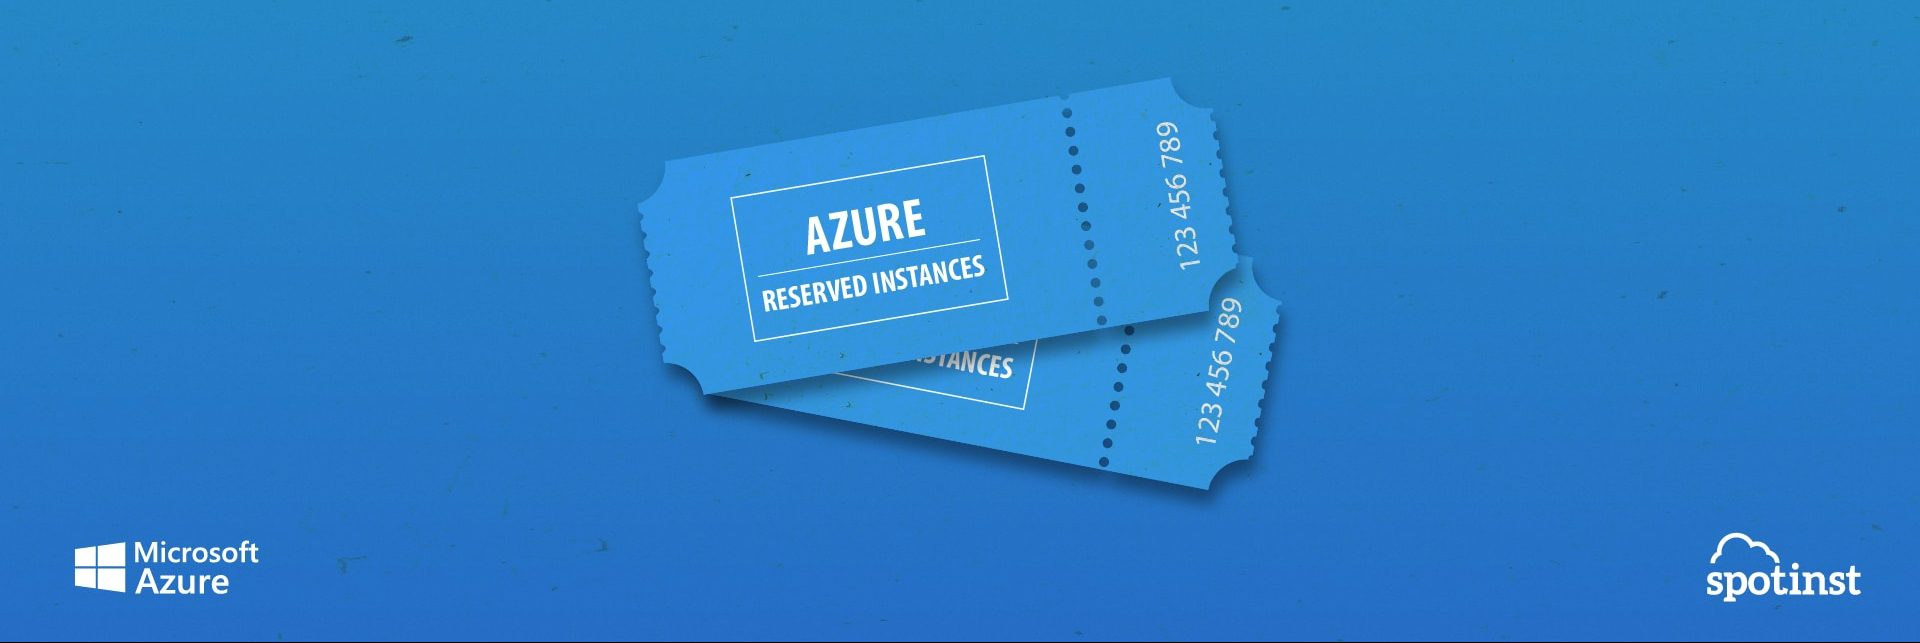 How Azure's New Reserved Instances Are Different